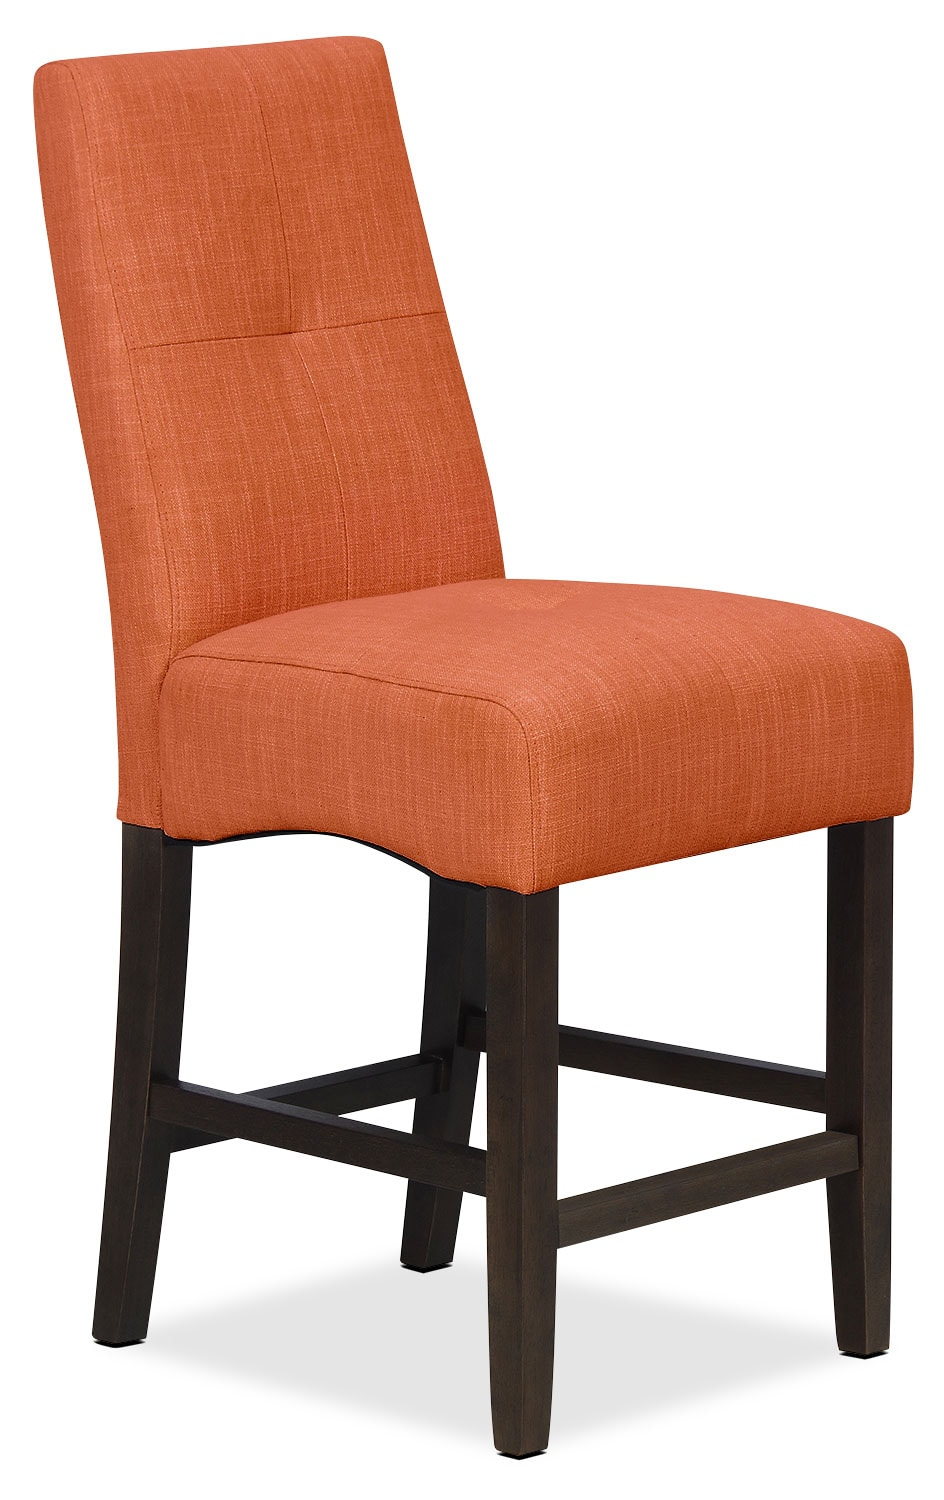 Dining Room Furniture - Soho Counter-Height Dining Chair – Tangelo